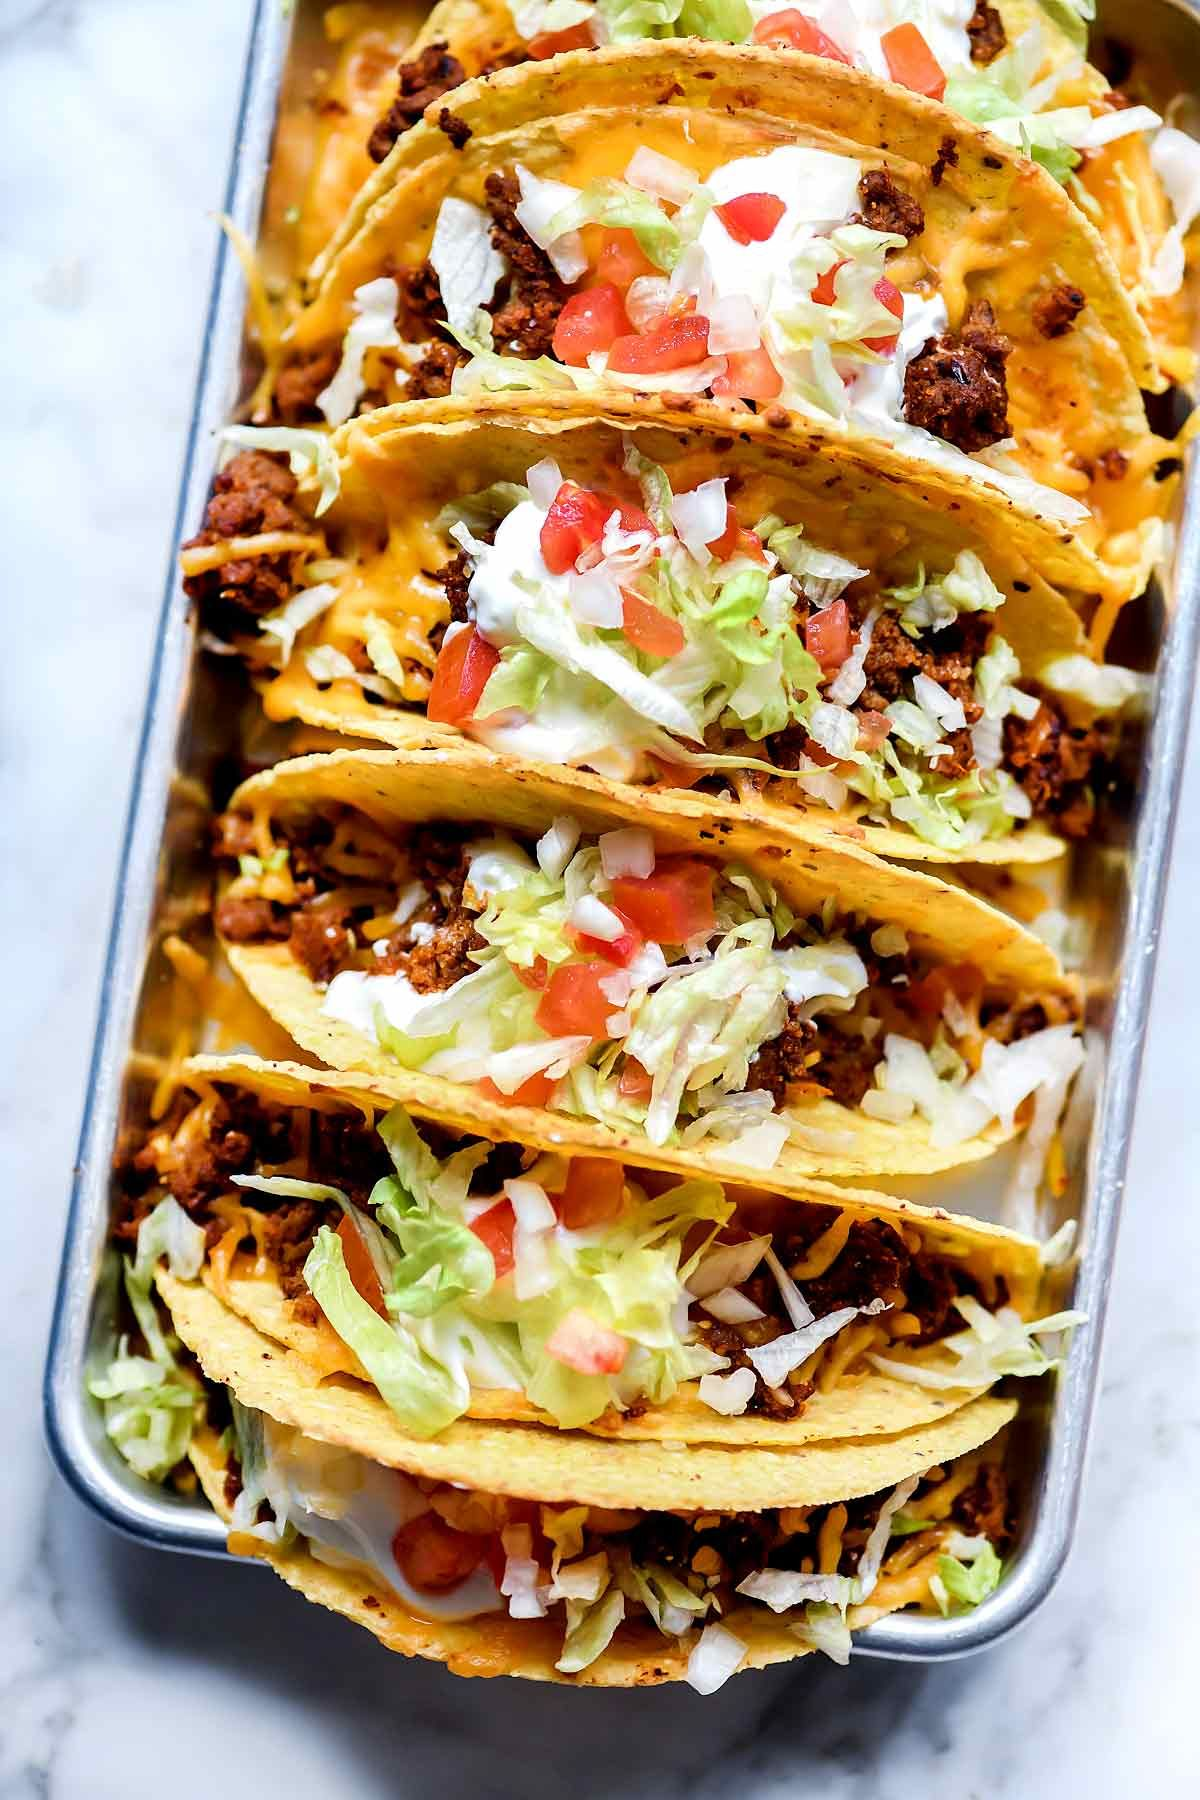 This Is How To Make A Beef Tacos Recipe That Tastes Just Like Taco Bell Tacos For An Easy Taco Tuesday Dinner At Ho Foodie Crush Taco Recipes Ground Beef Tacos